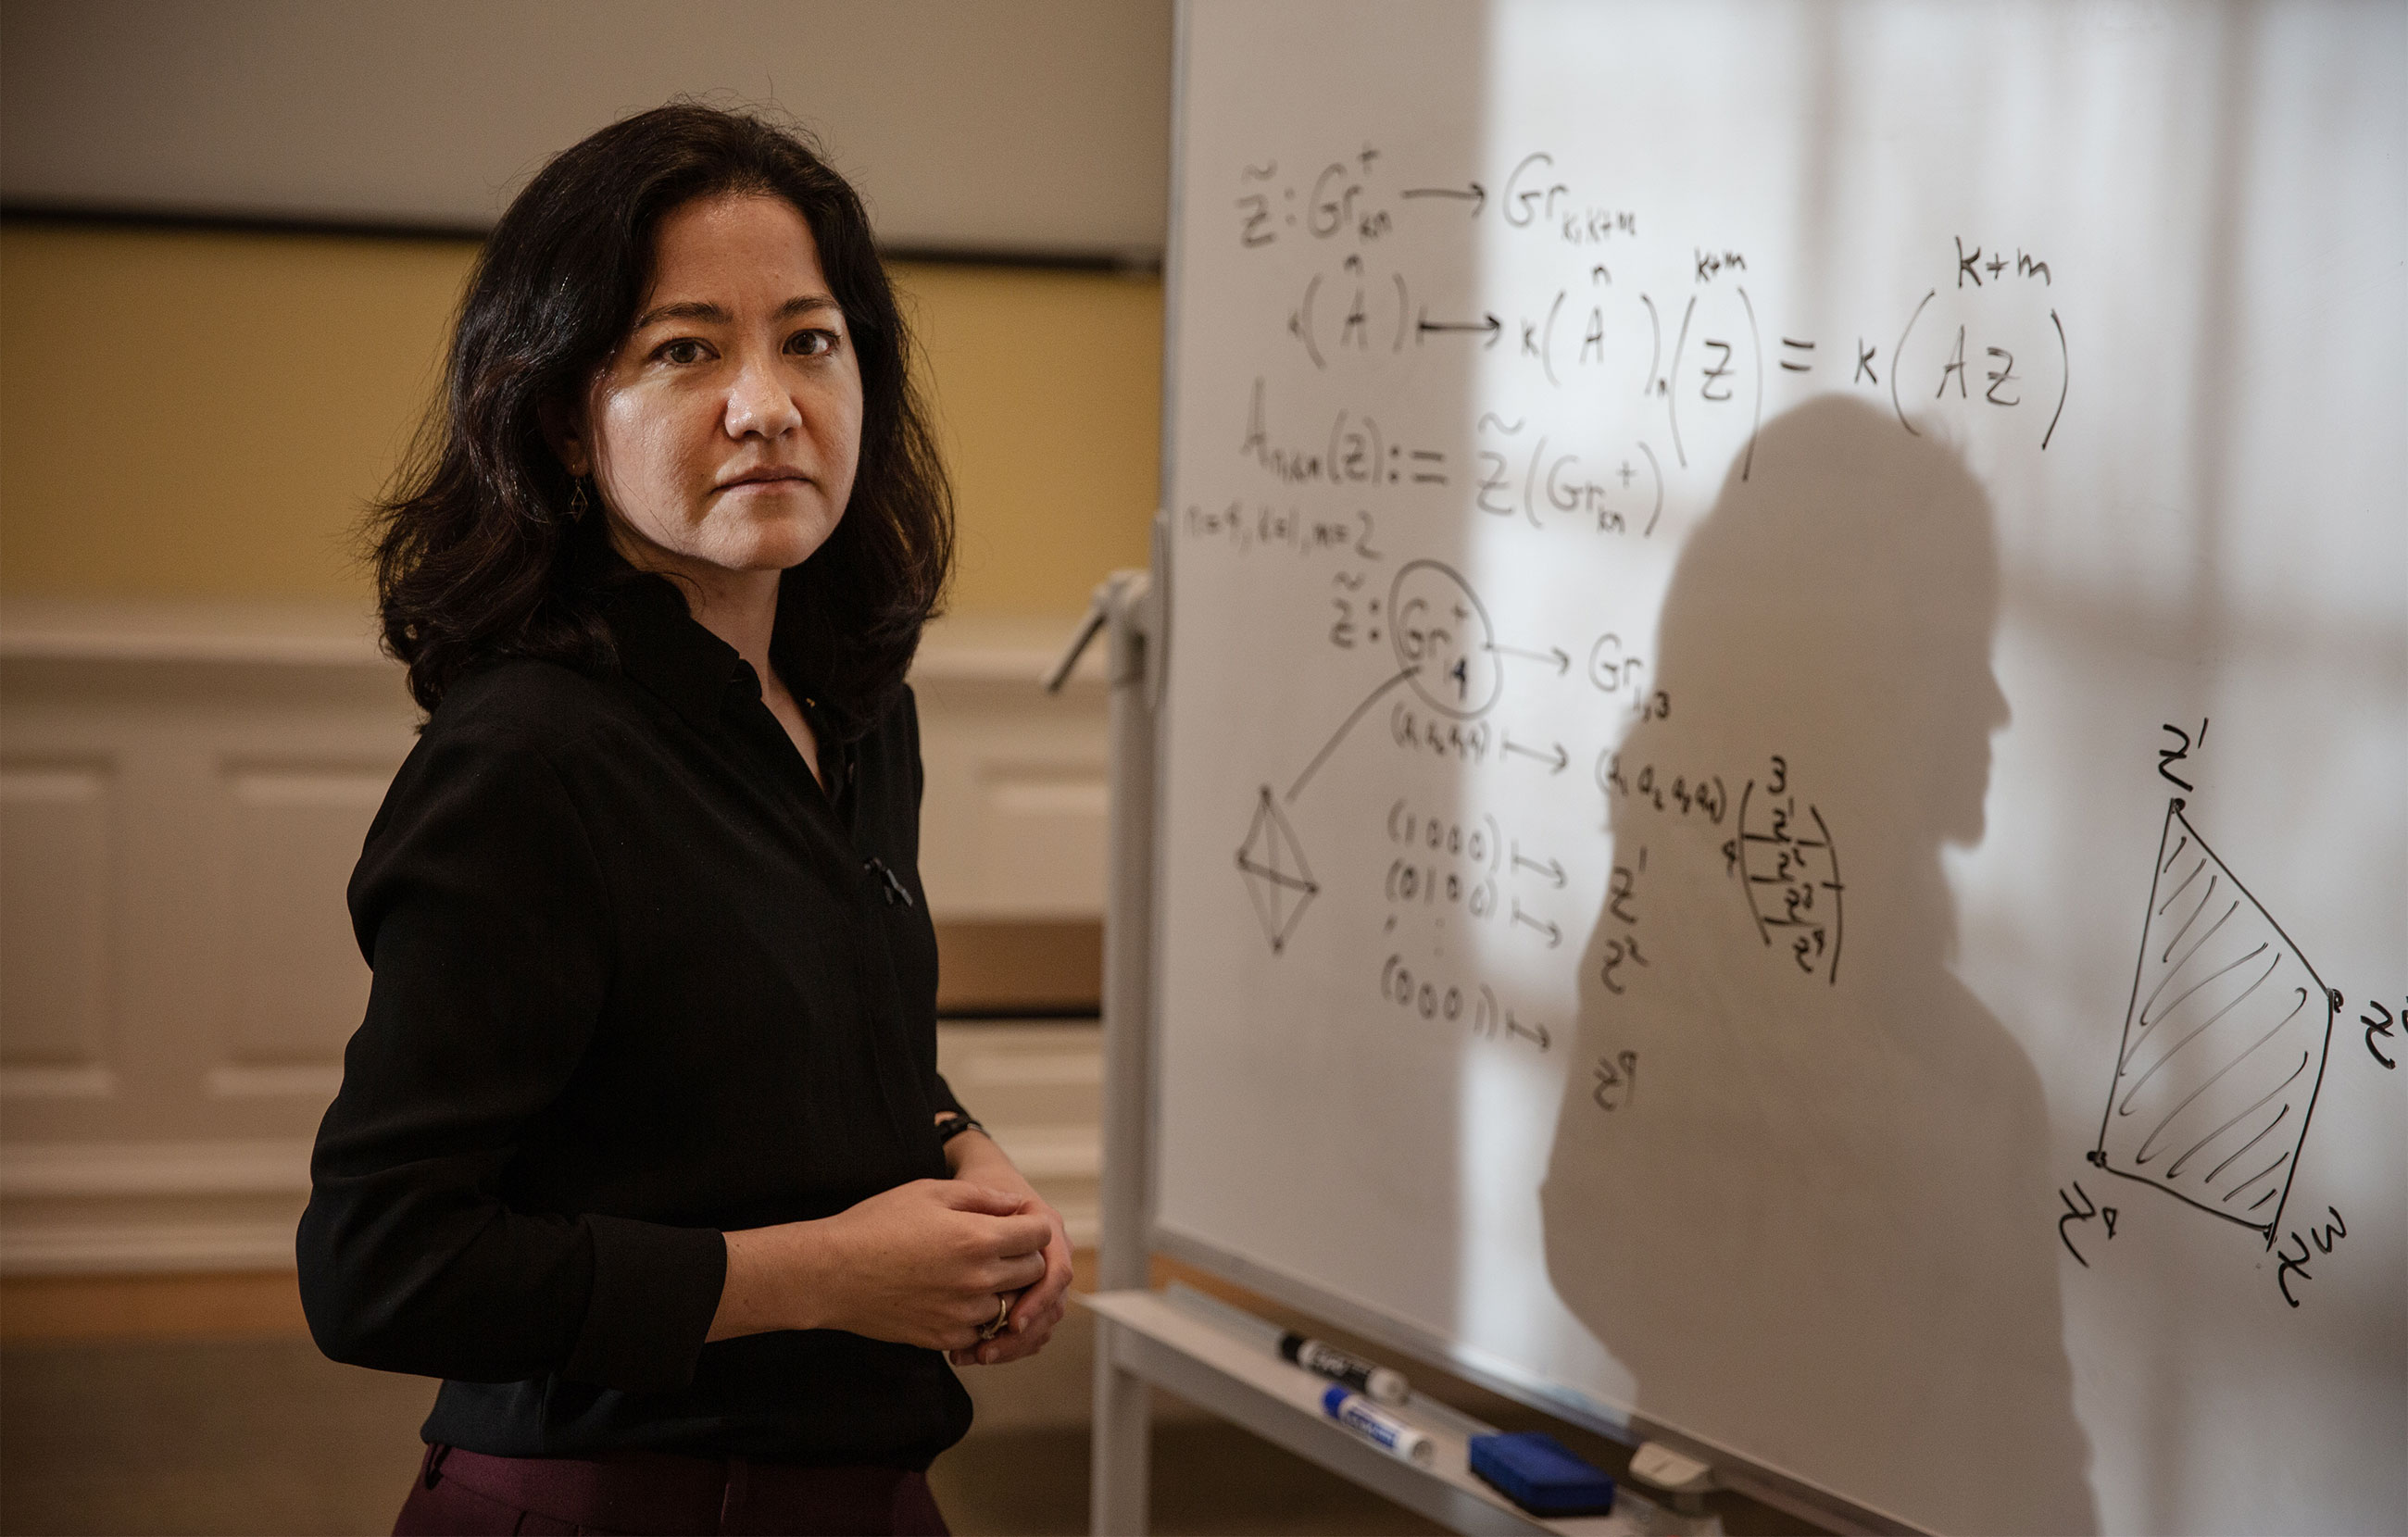 Mathematician Lauren Williams standing in front of a whiteboard that has mathematics written on it.